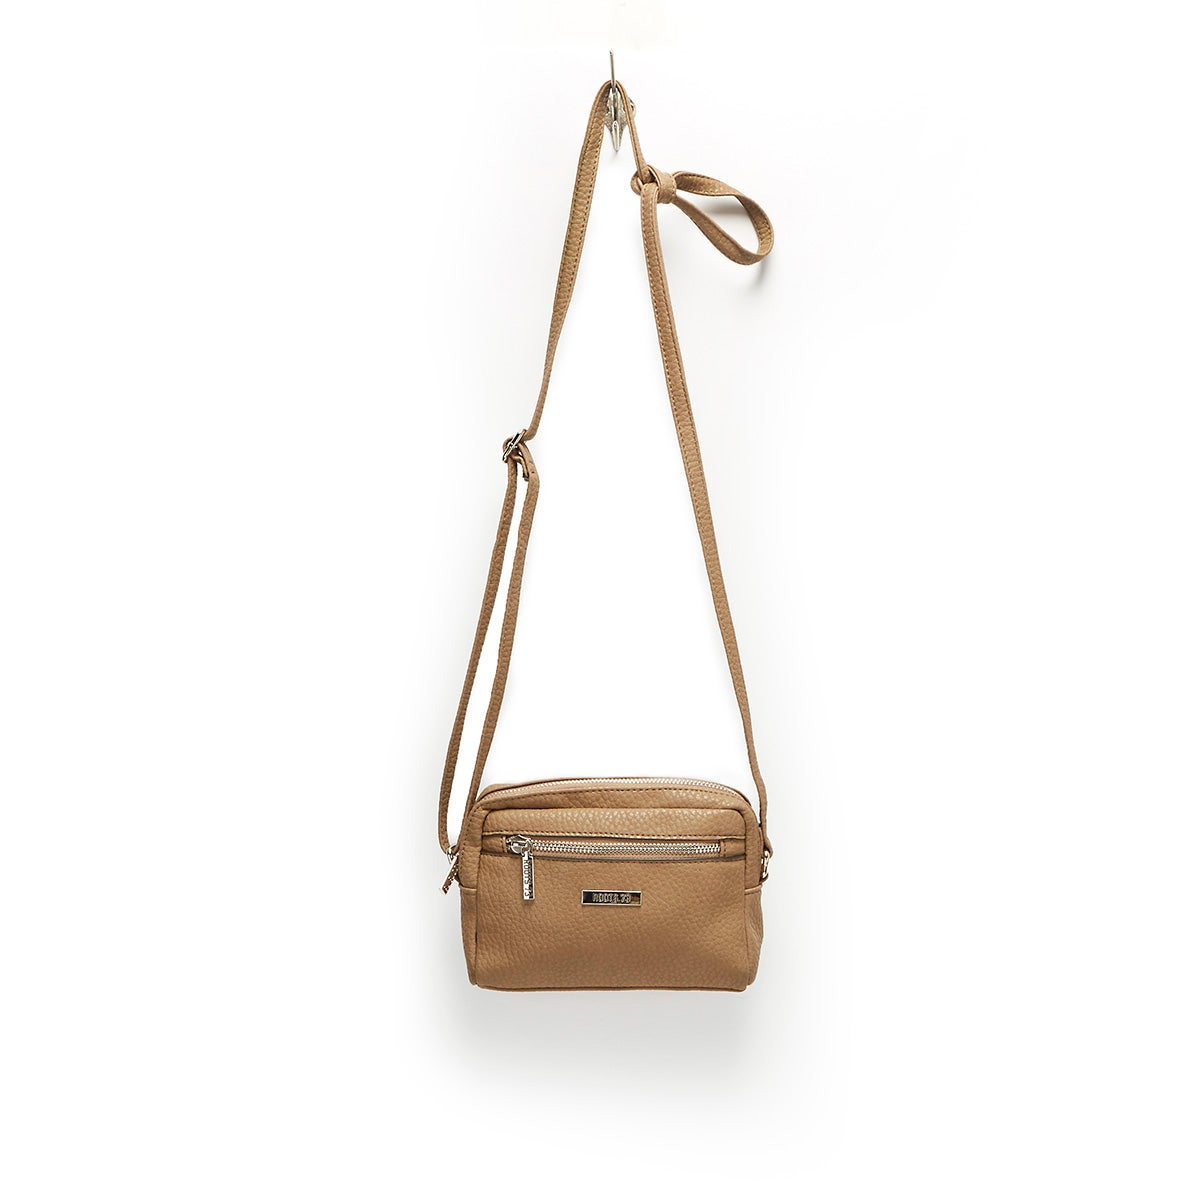 Sac � bandouli�re Roots73, taupe, femmes